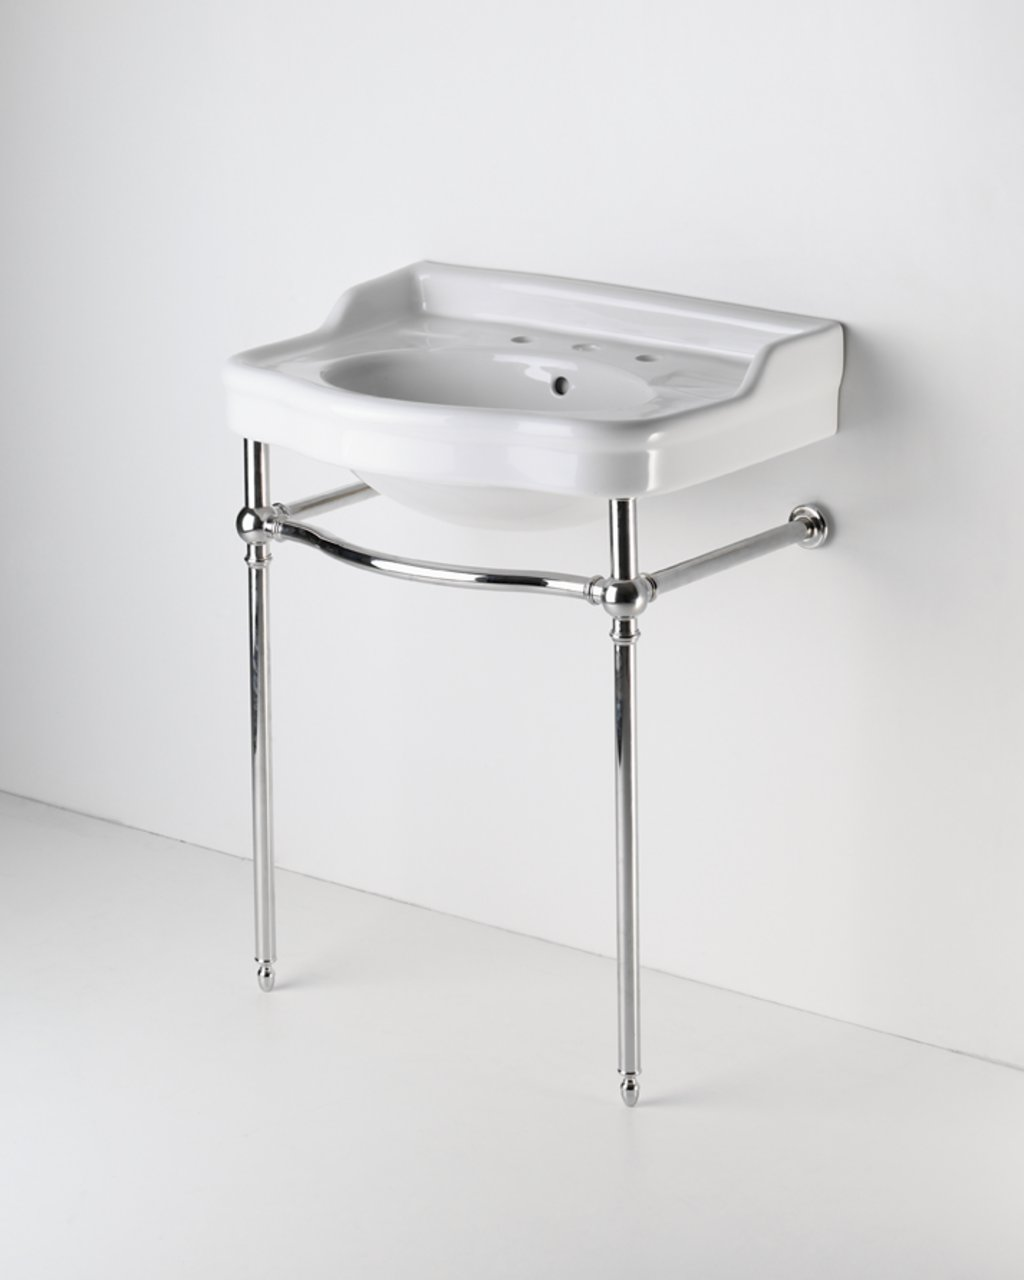 Bathroom Sink Consoles : Interior Philosophy: My Top 5 Bathroom Vanities/ Sink Basins